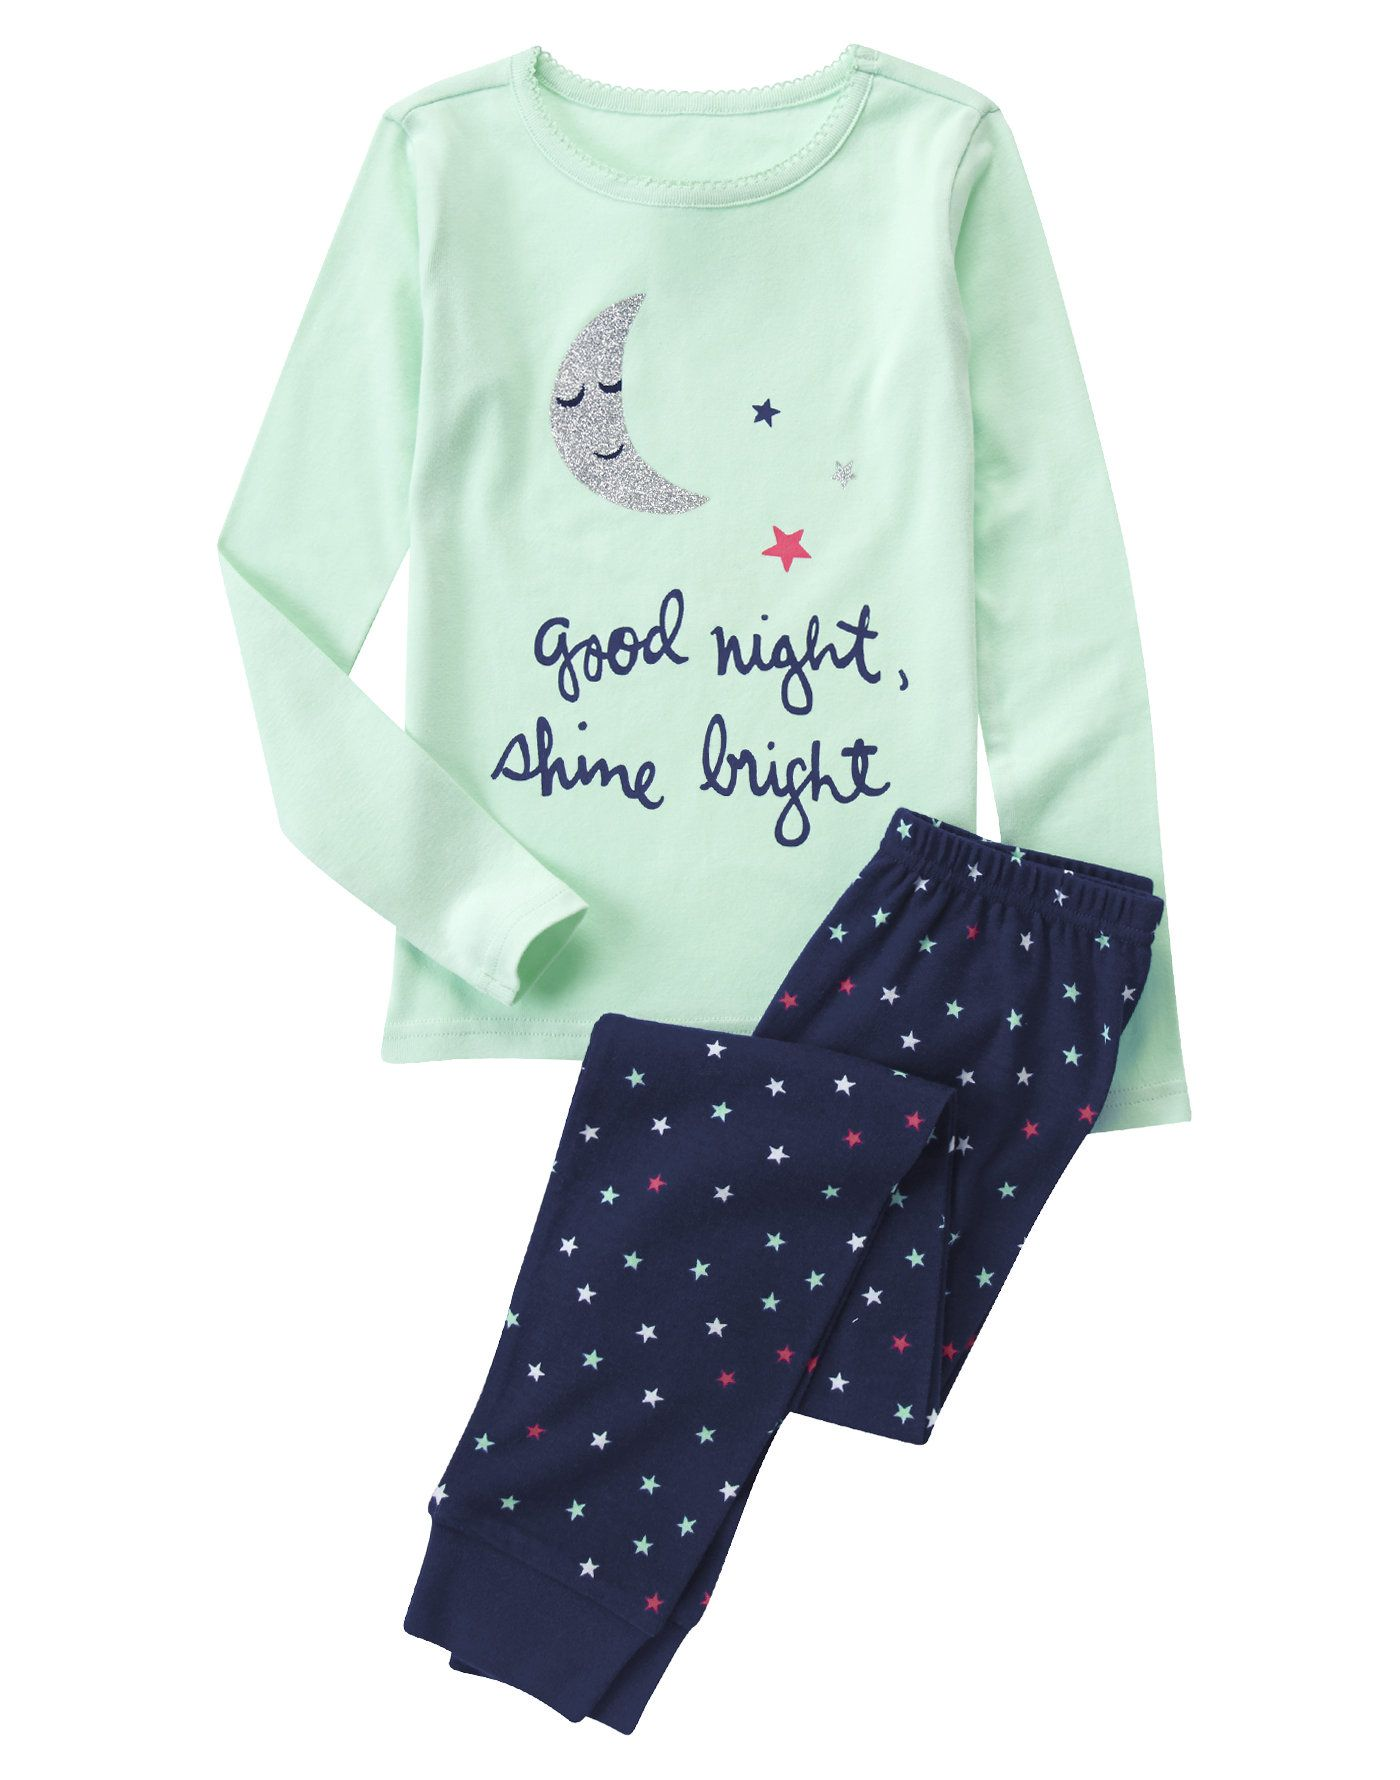 456a67a3d5a4 Good Night Shine Bright 2-Piece Pajama Set at Crazy 8 (Crazy 8 6m-5y ...